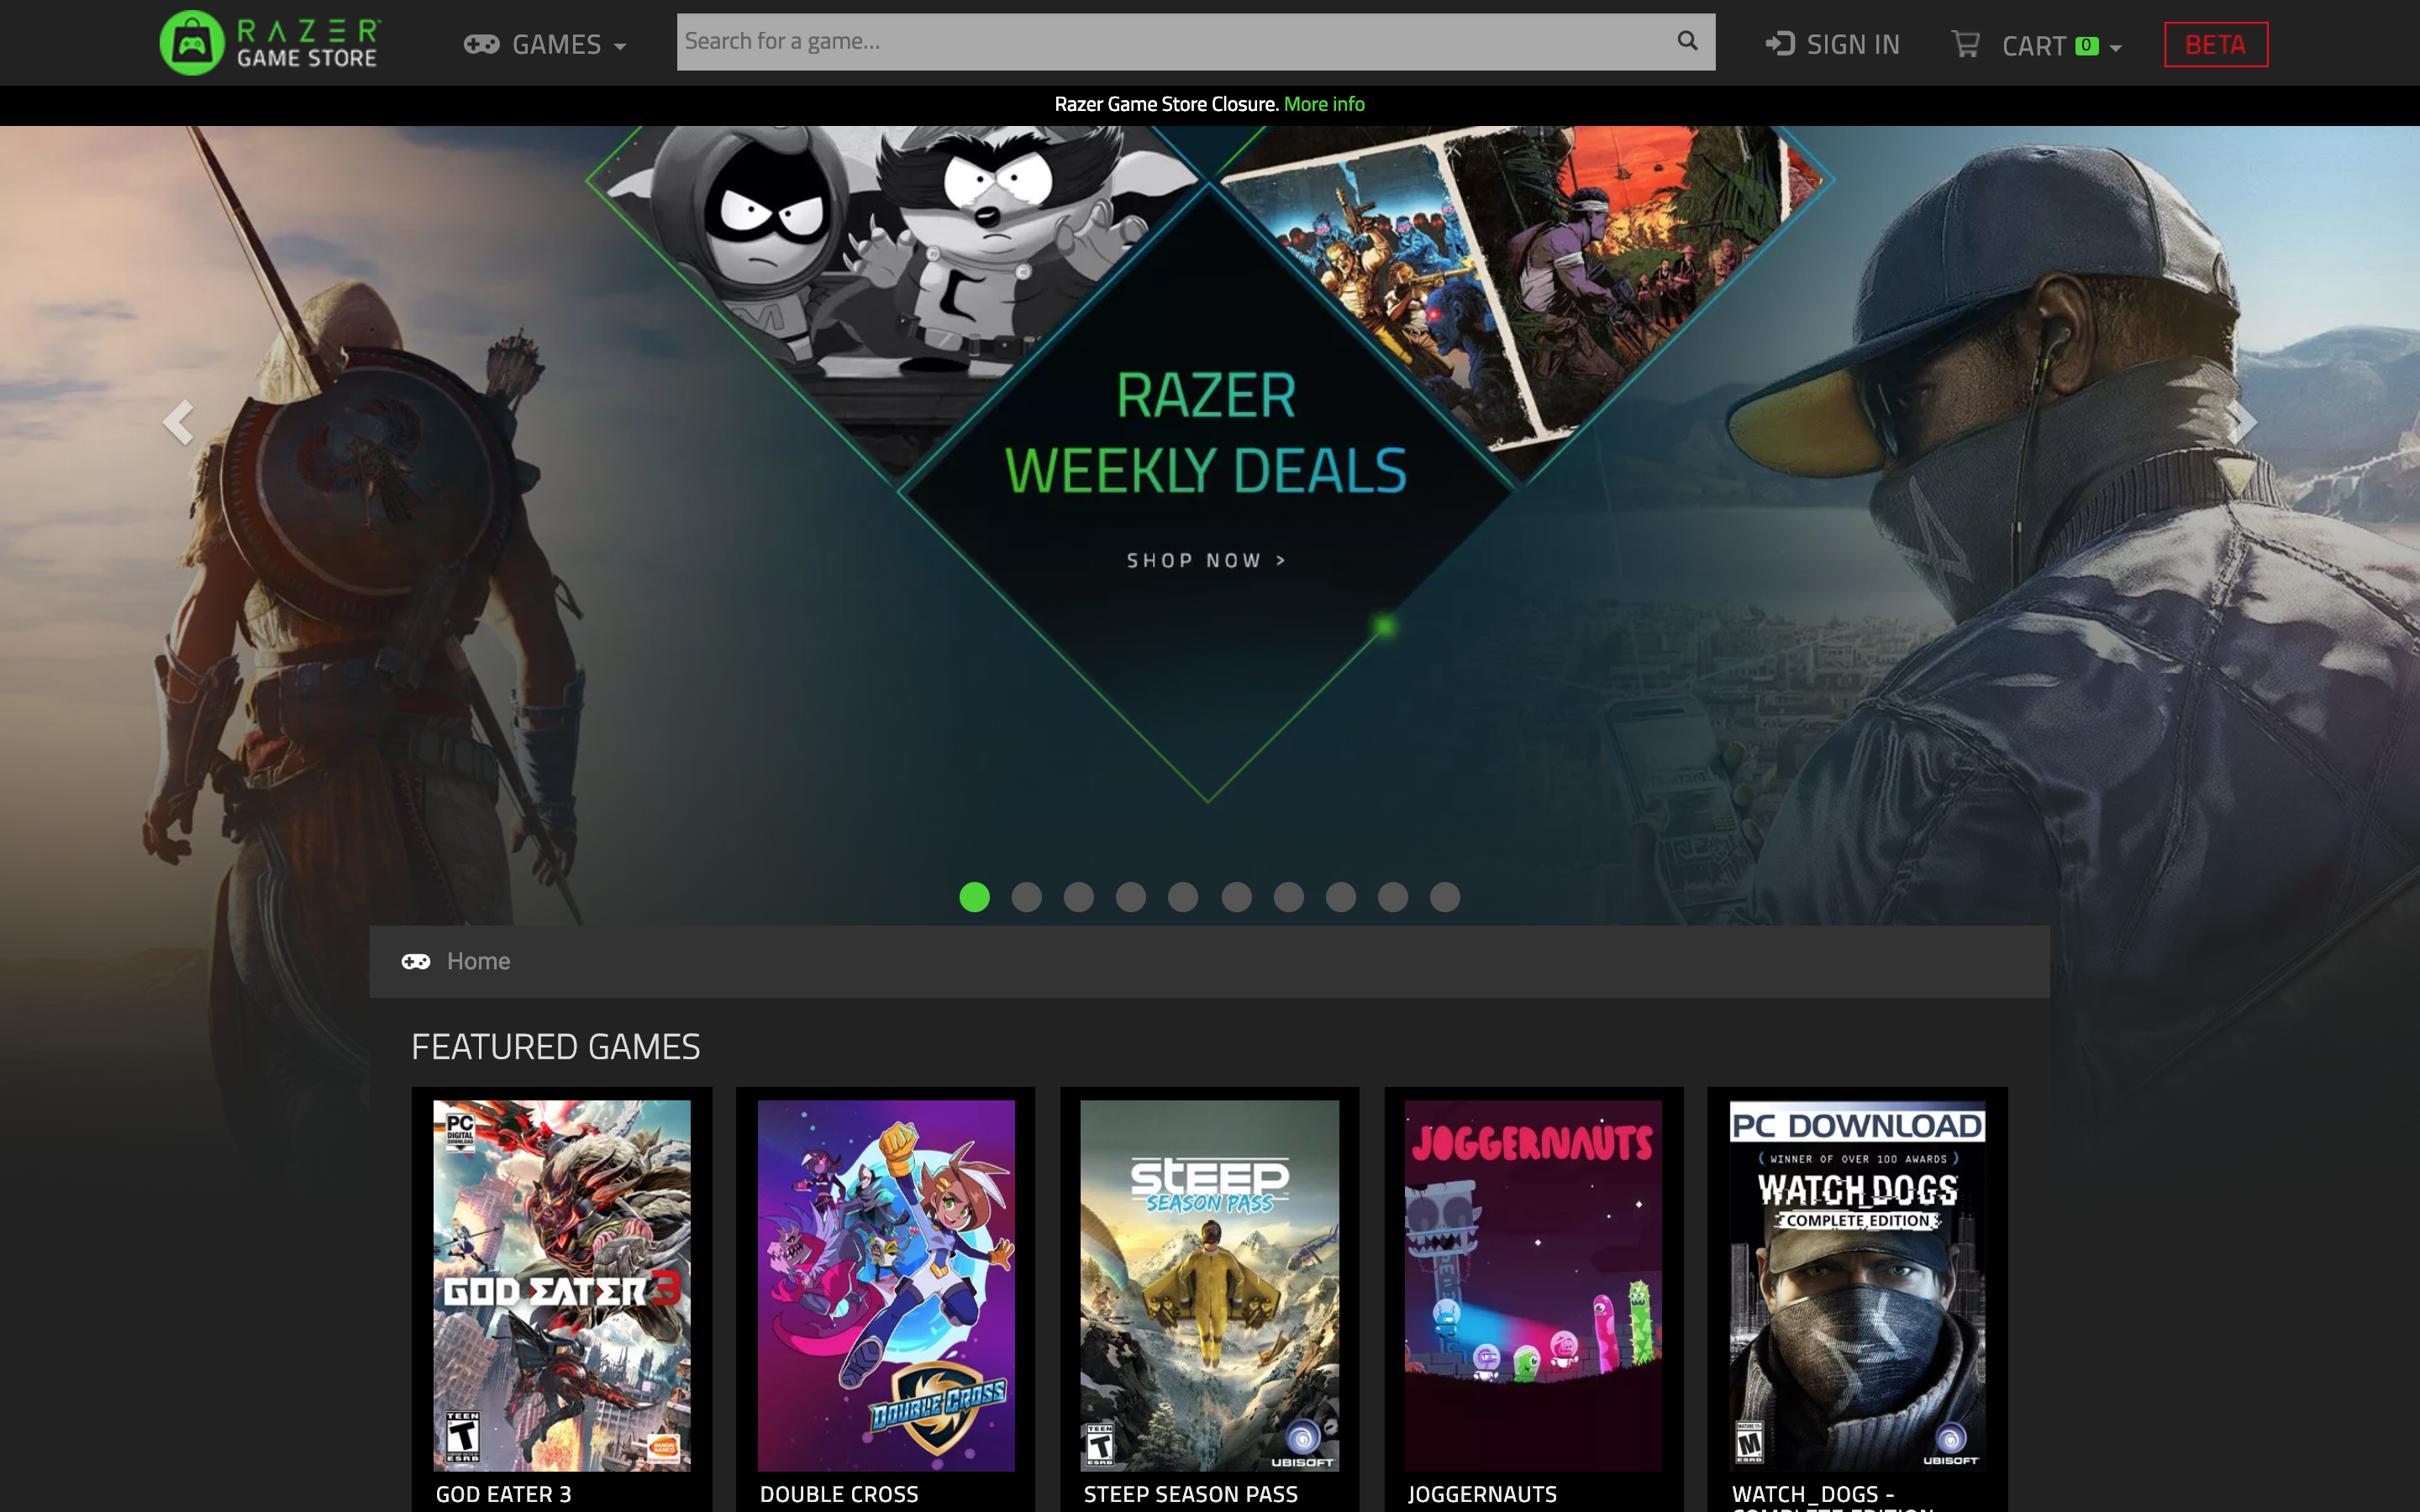 Razer is closing its game store after less than a year Screenshot 2019 02 18 12